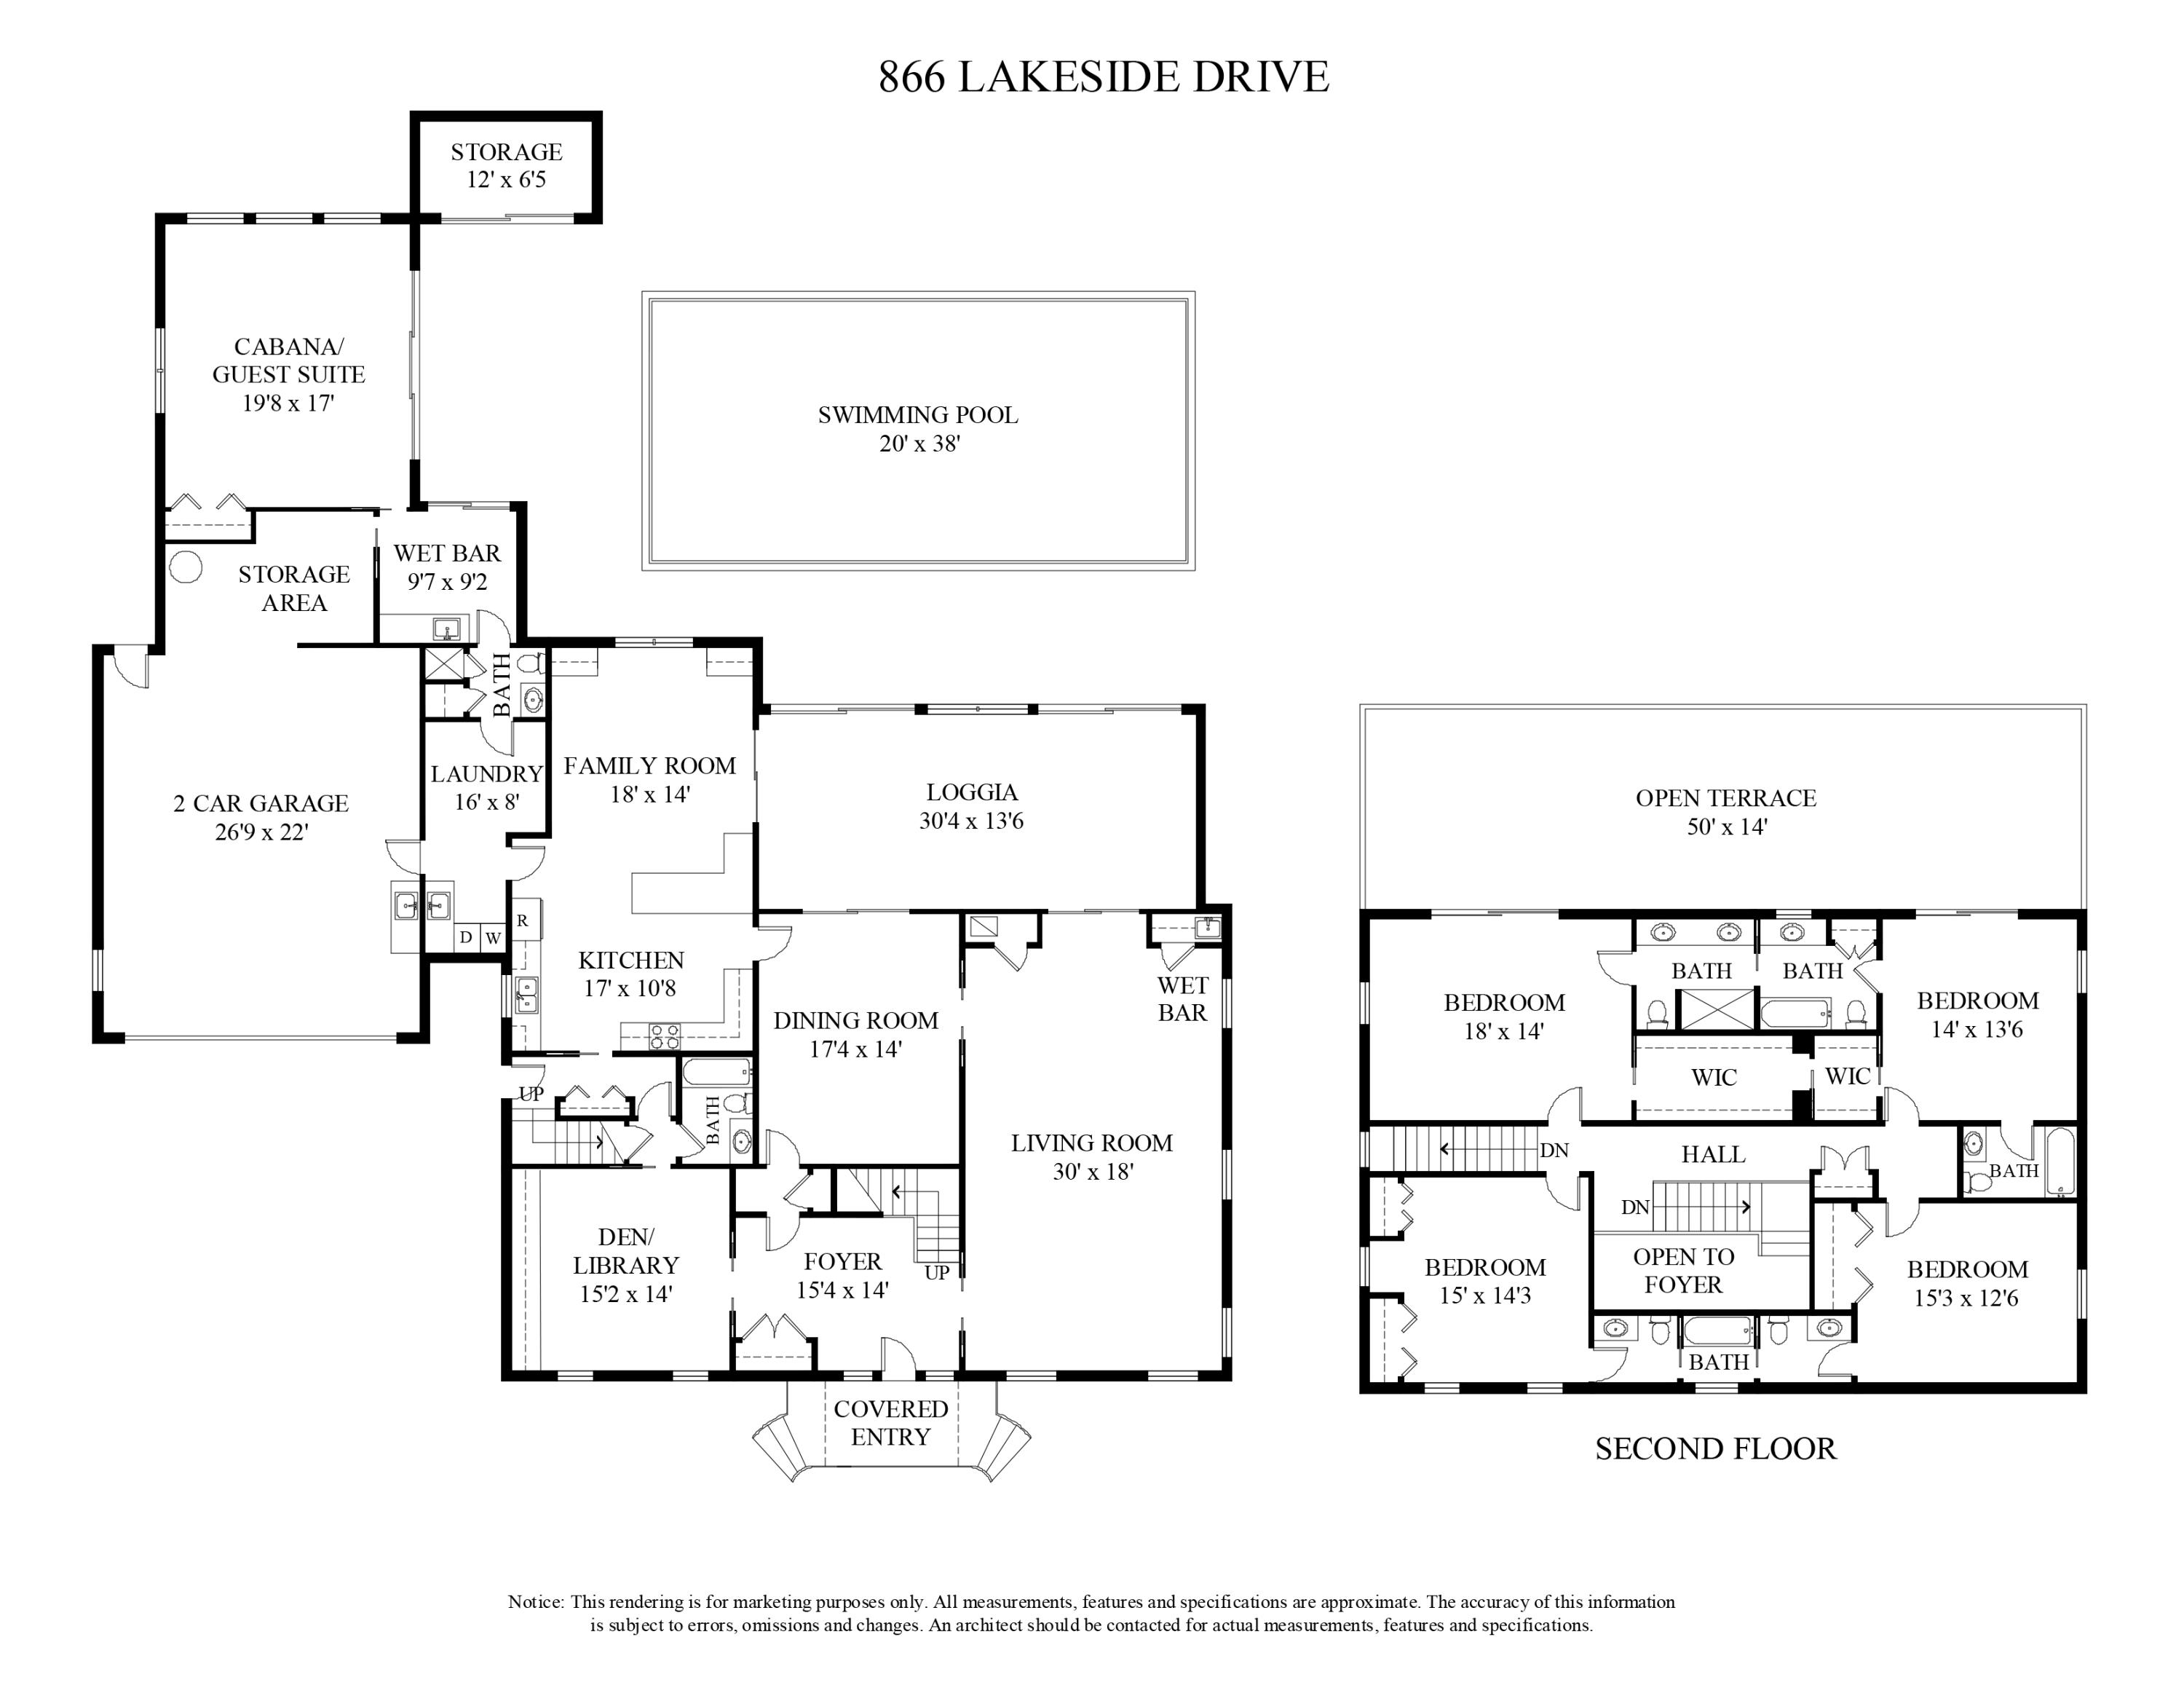 YACHT CLUB ADDITION TO VILLAGEOF NORTH PALM BEACH  LT 12 BLK 69